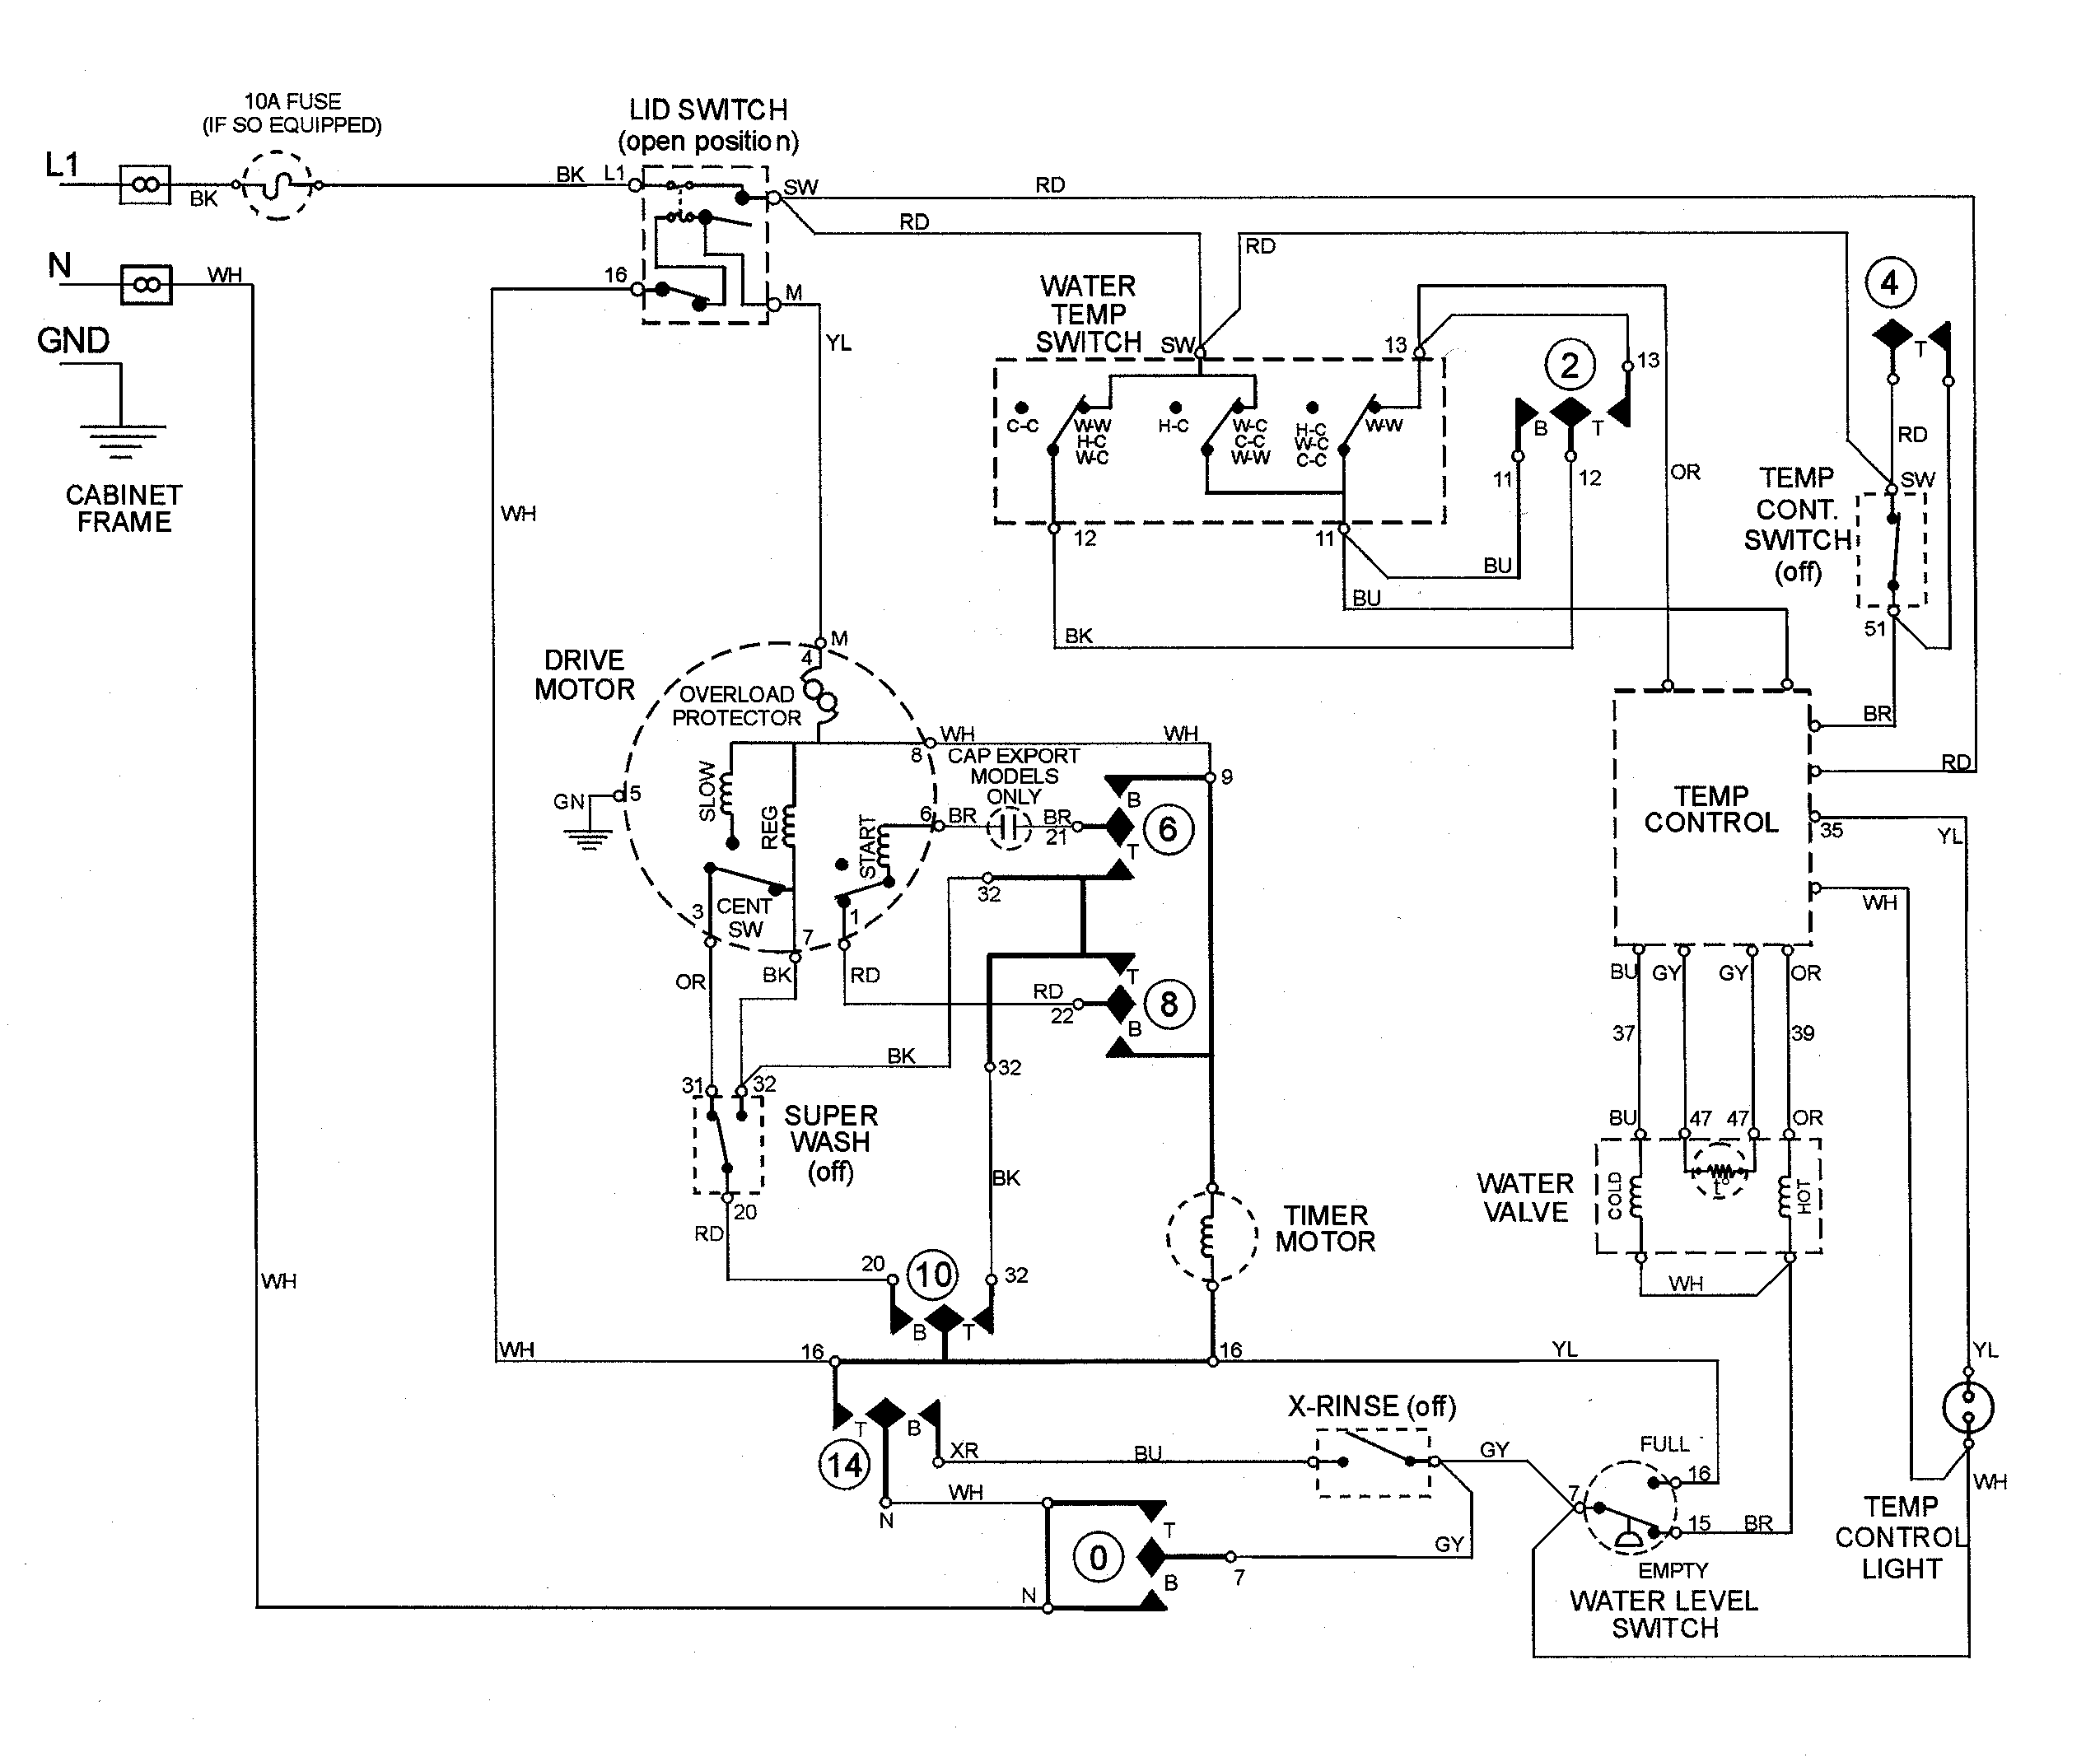 Ge Washing Machine Motor Wiring Diagram : Ge washing machine motor wiring diagram